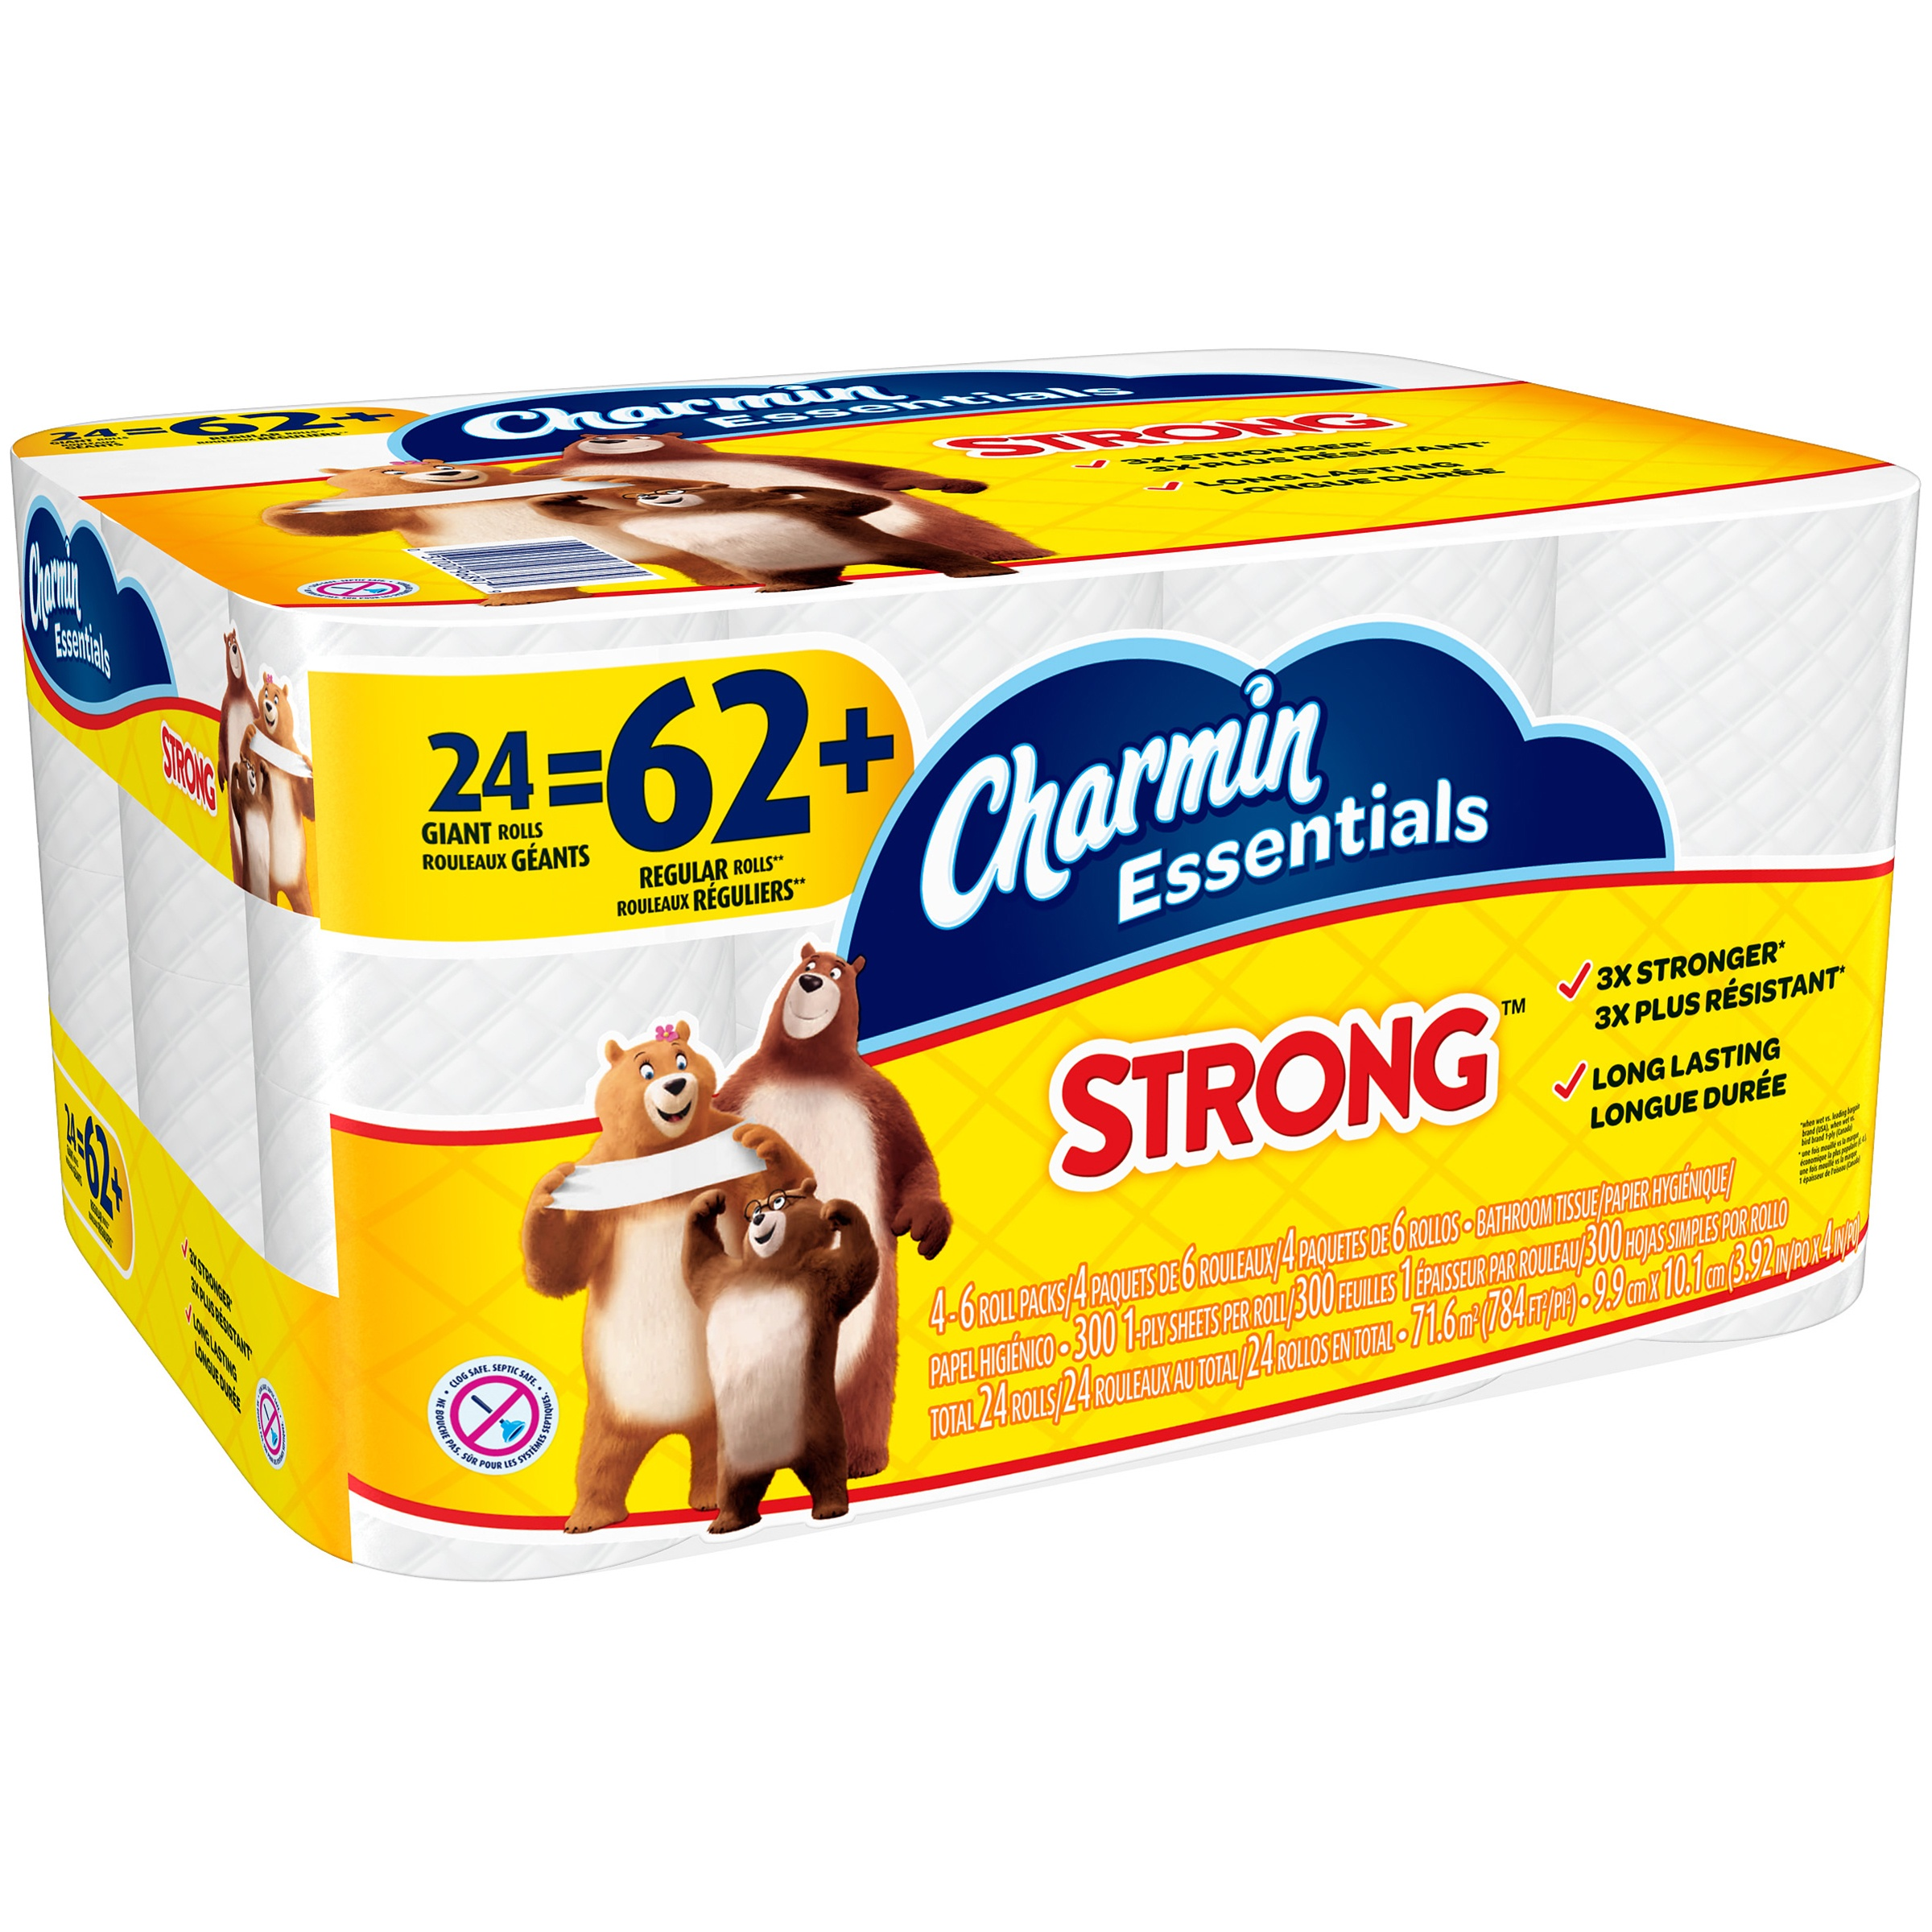 Charmin Essentials Strong Toilet Paper 24 Giant Rolls by Procter & Gamble